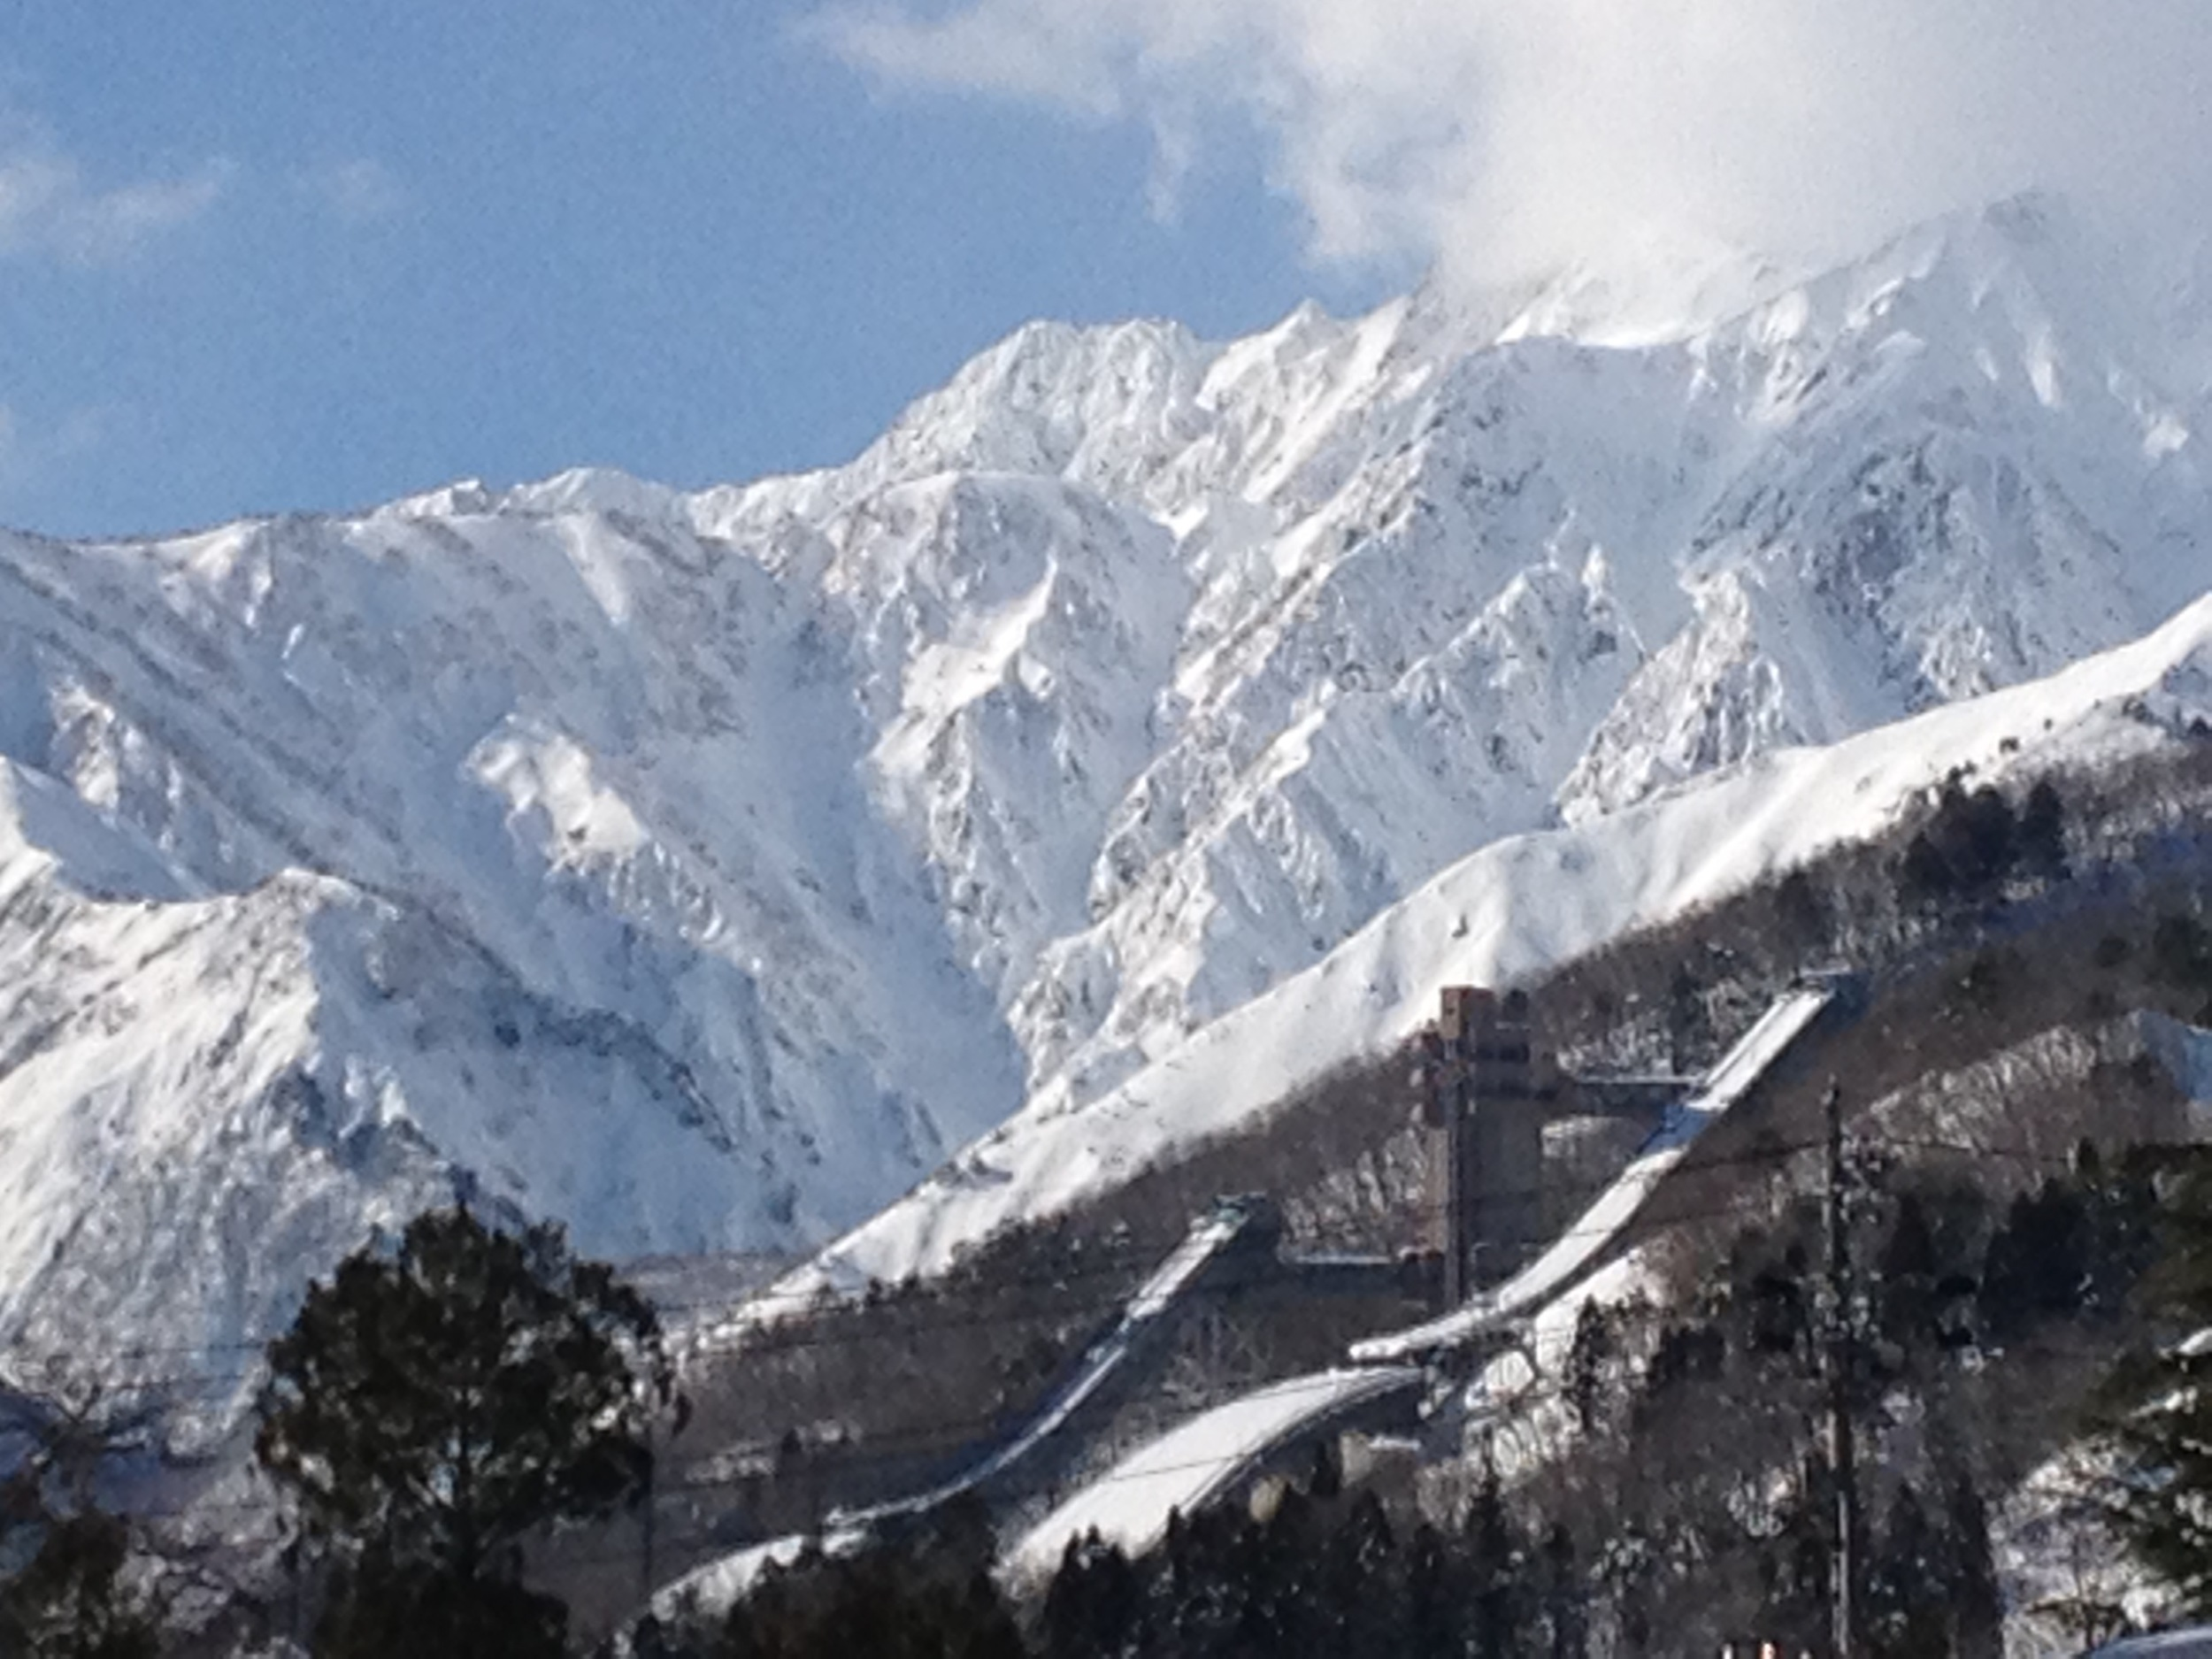 Impressive backdrop of the Japanese Alps, looming over the village of Hakuba